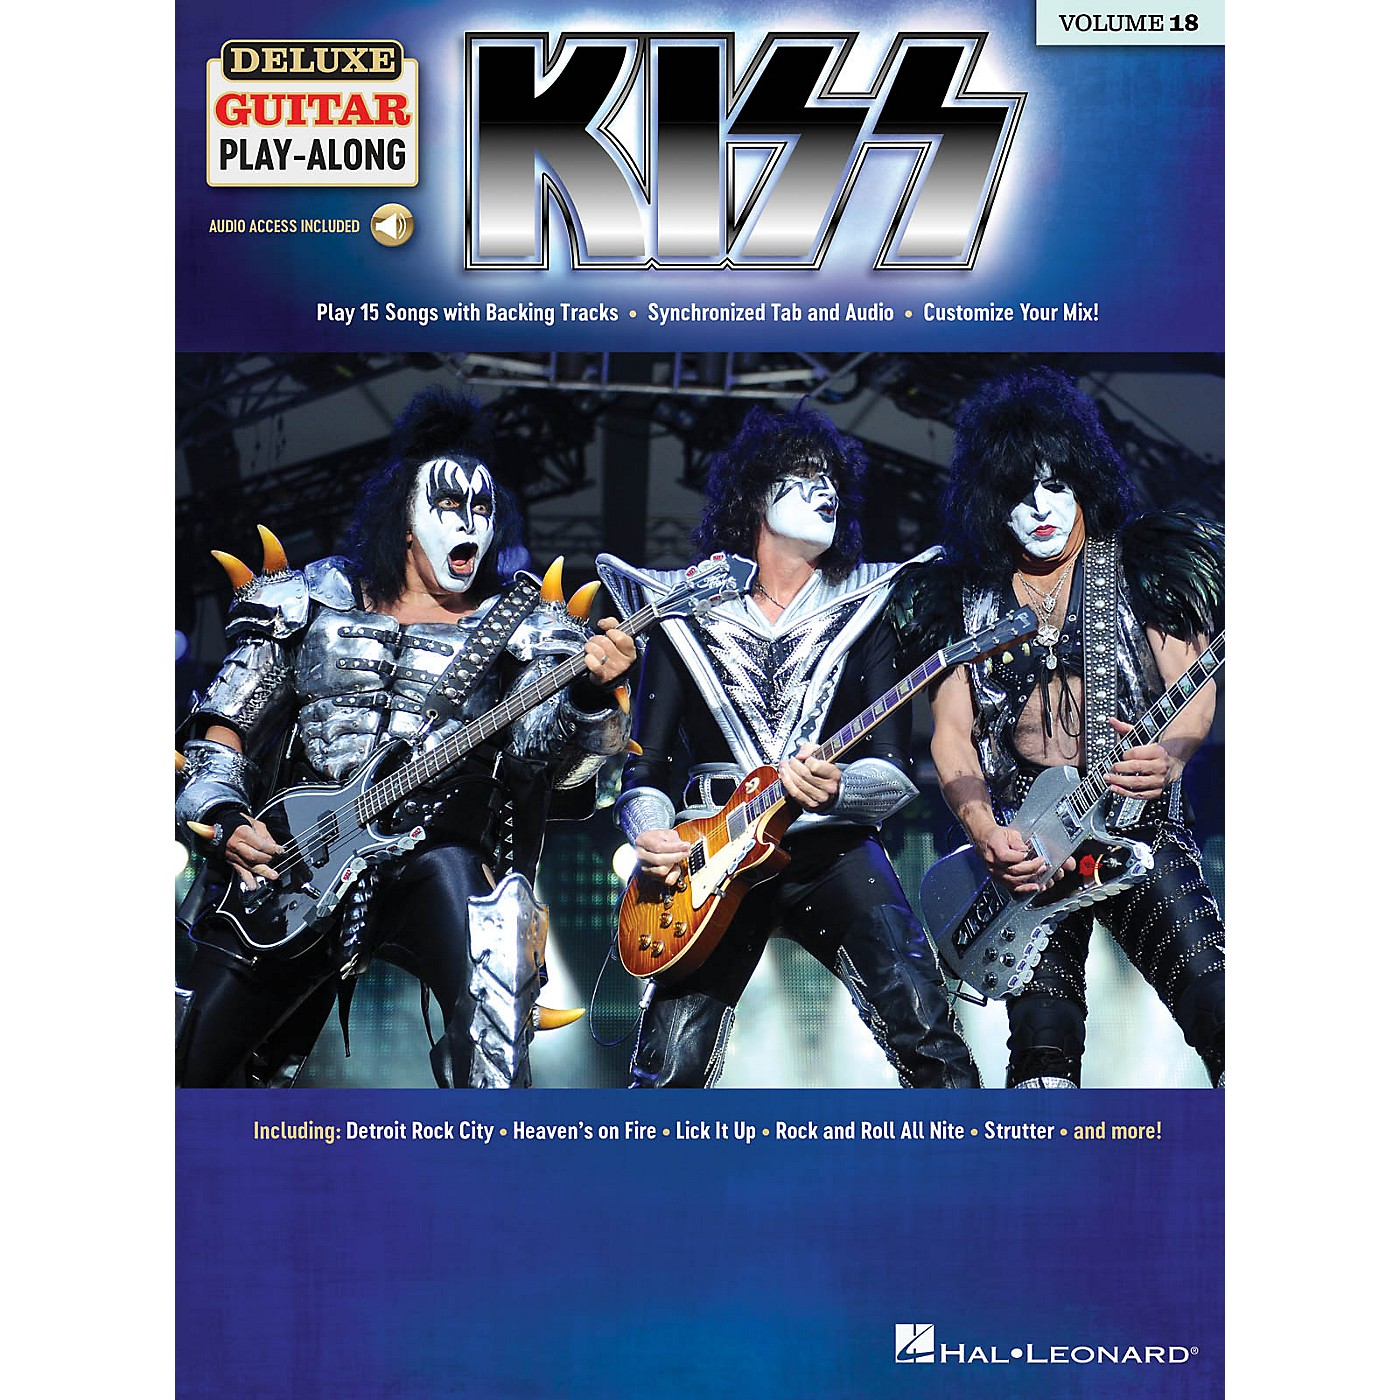 Hal Leonard KISS Deluxe Guitar Play-Along Volume 18 Book/Audio Online thumbnail